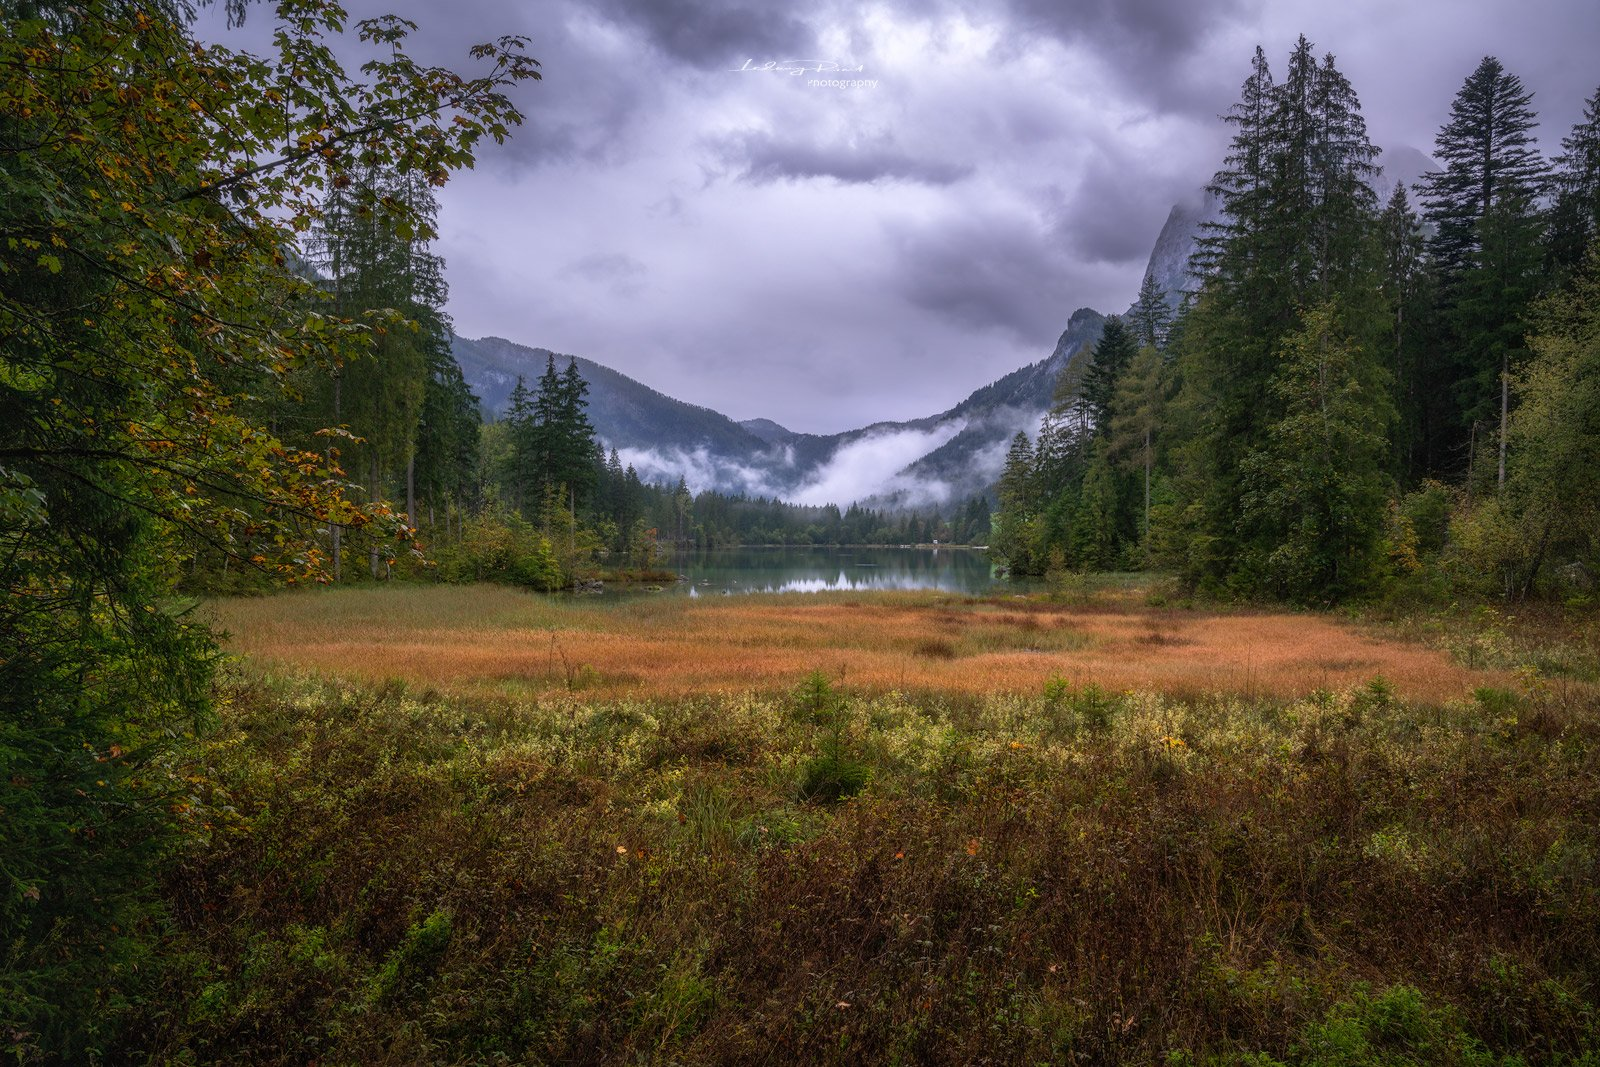 autumn, bavaria, beach, berchtesgaden, calm lake, calmness, europe, fall, fall colours, flags, fog, foggy, forest, germany, grass, green, harmony, hintersee, lake, late summer, marsh, marsh land, morning, mountain range, mountains, nature, orange, outdoor, Ludwig Riml